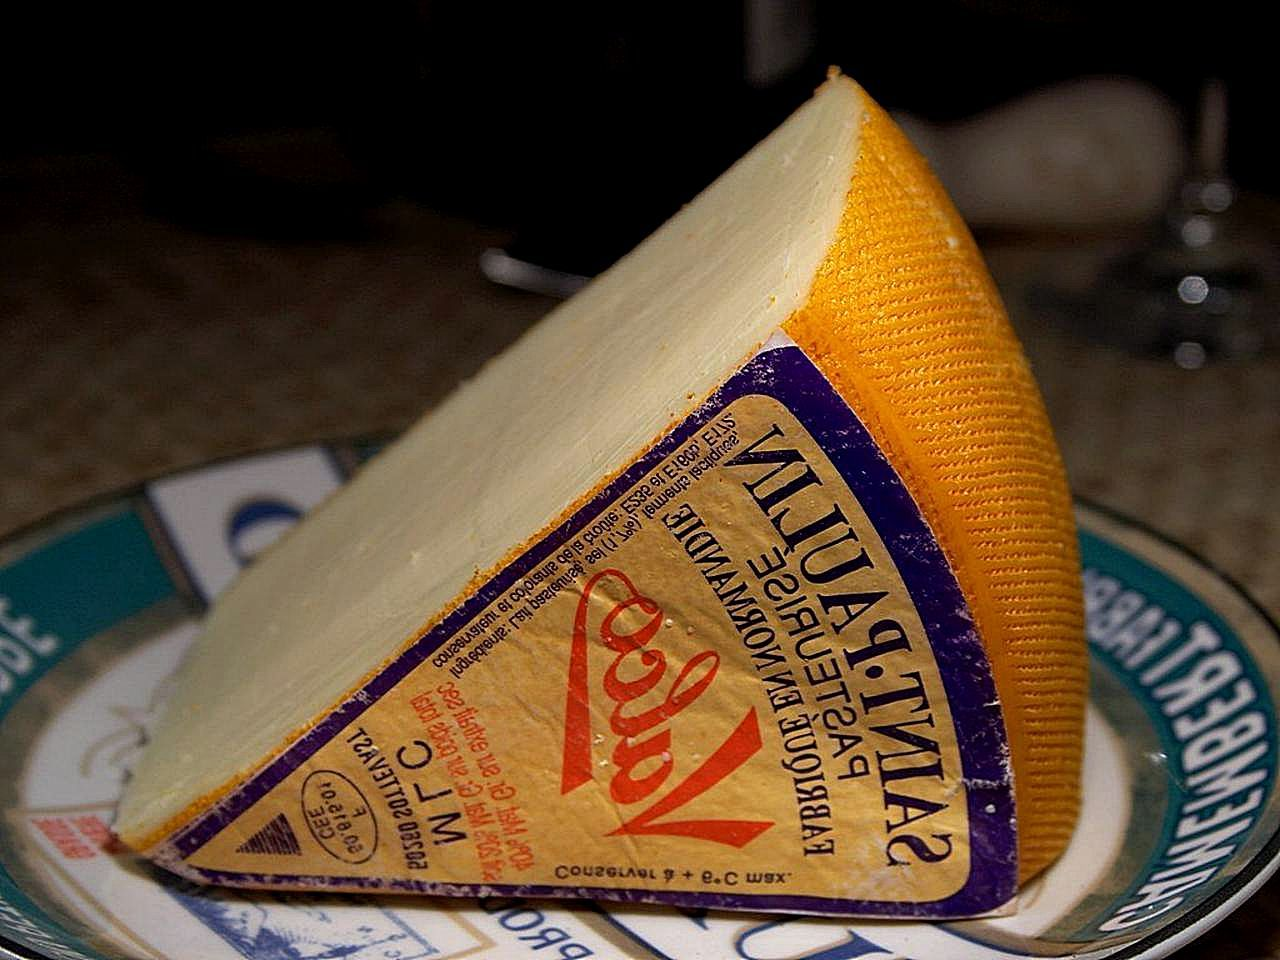 File:Saint Paulin cheese.jpg.